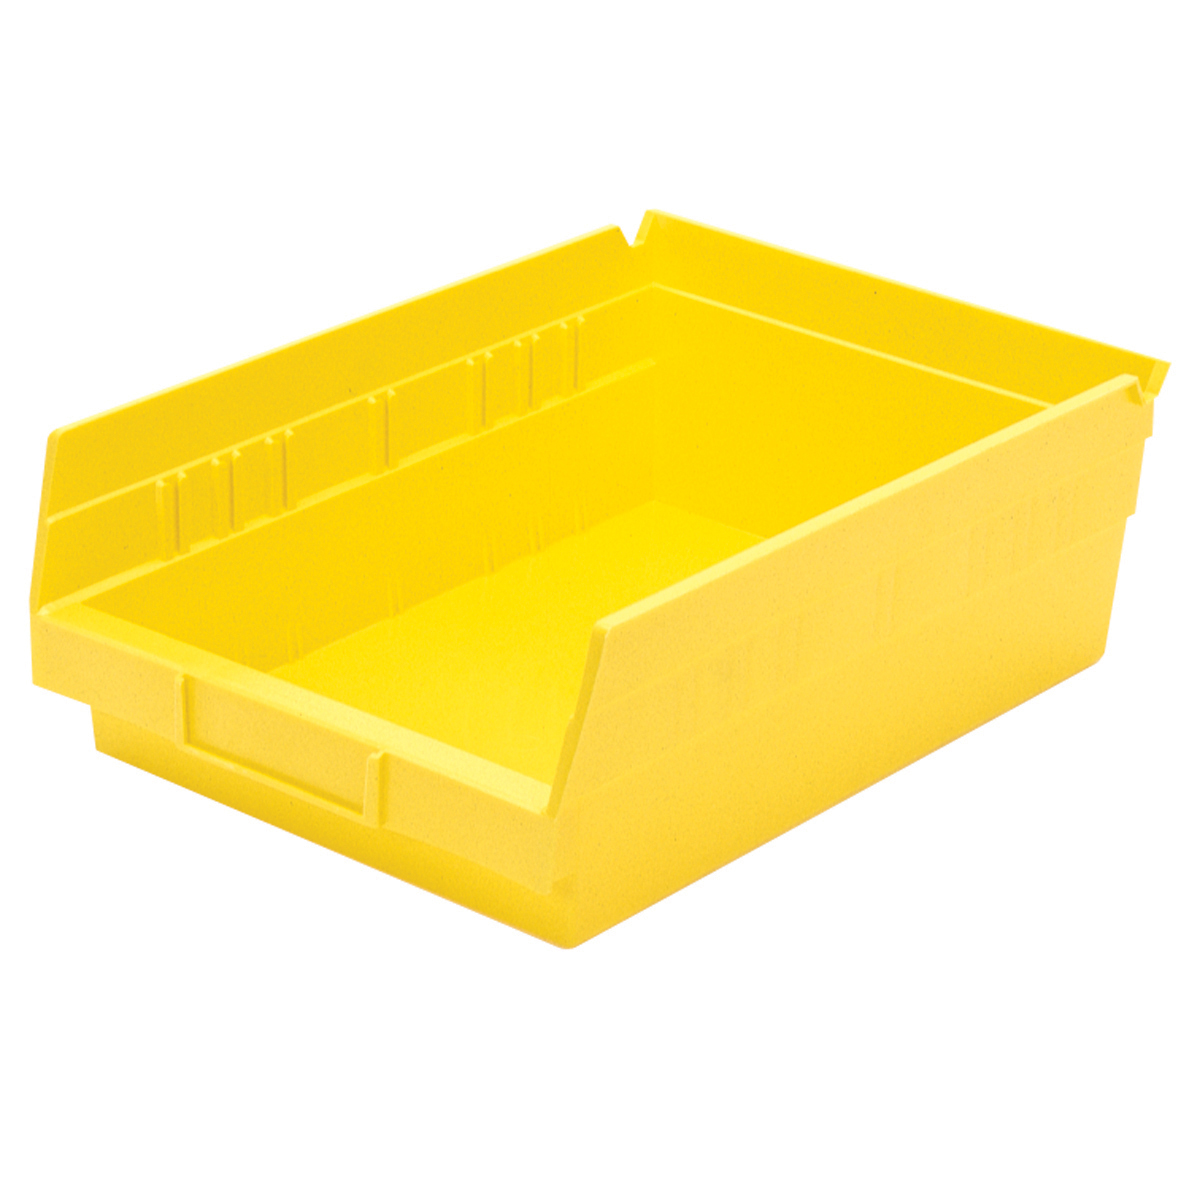 Shelf Bin 11-5/8 x 8-3/8 x 4, Yellow (30150YELLO).  This item sold in carton quantities of 12.